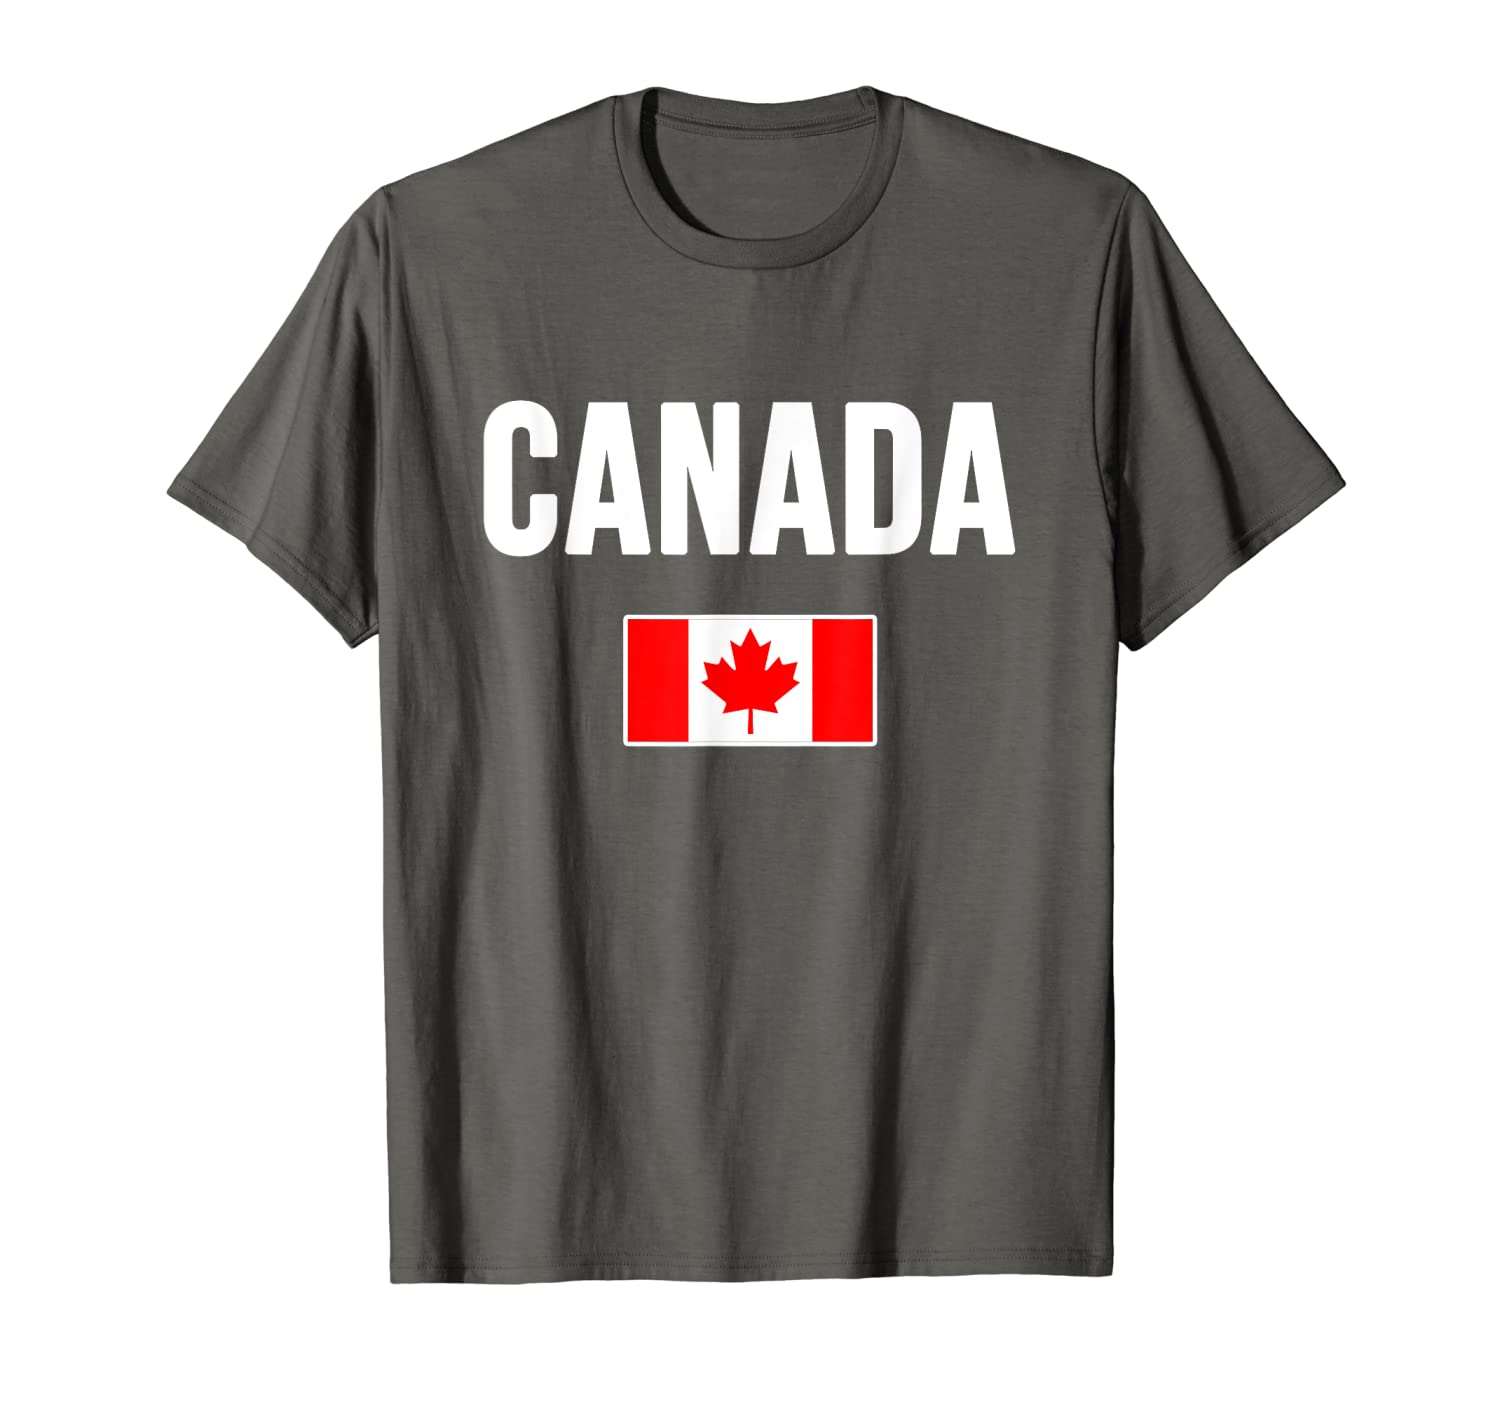 fc86b83ec Amazon.com: Canada T-shirt Canadian Flag Love Gift Souvenir Merchandise:  Clothing